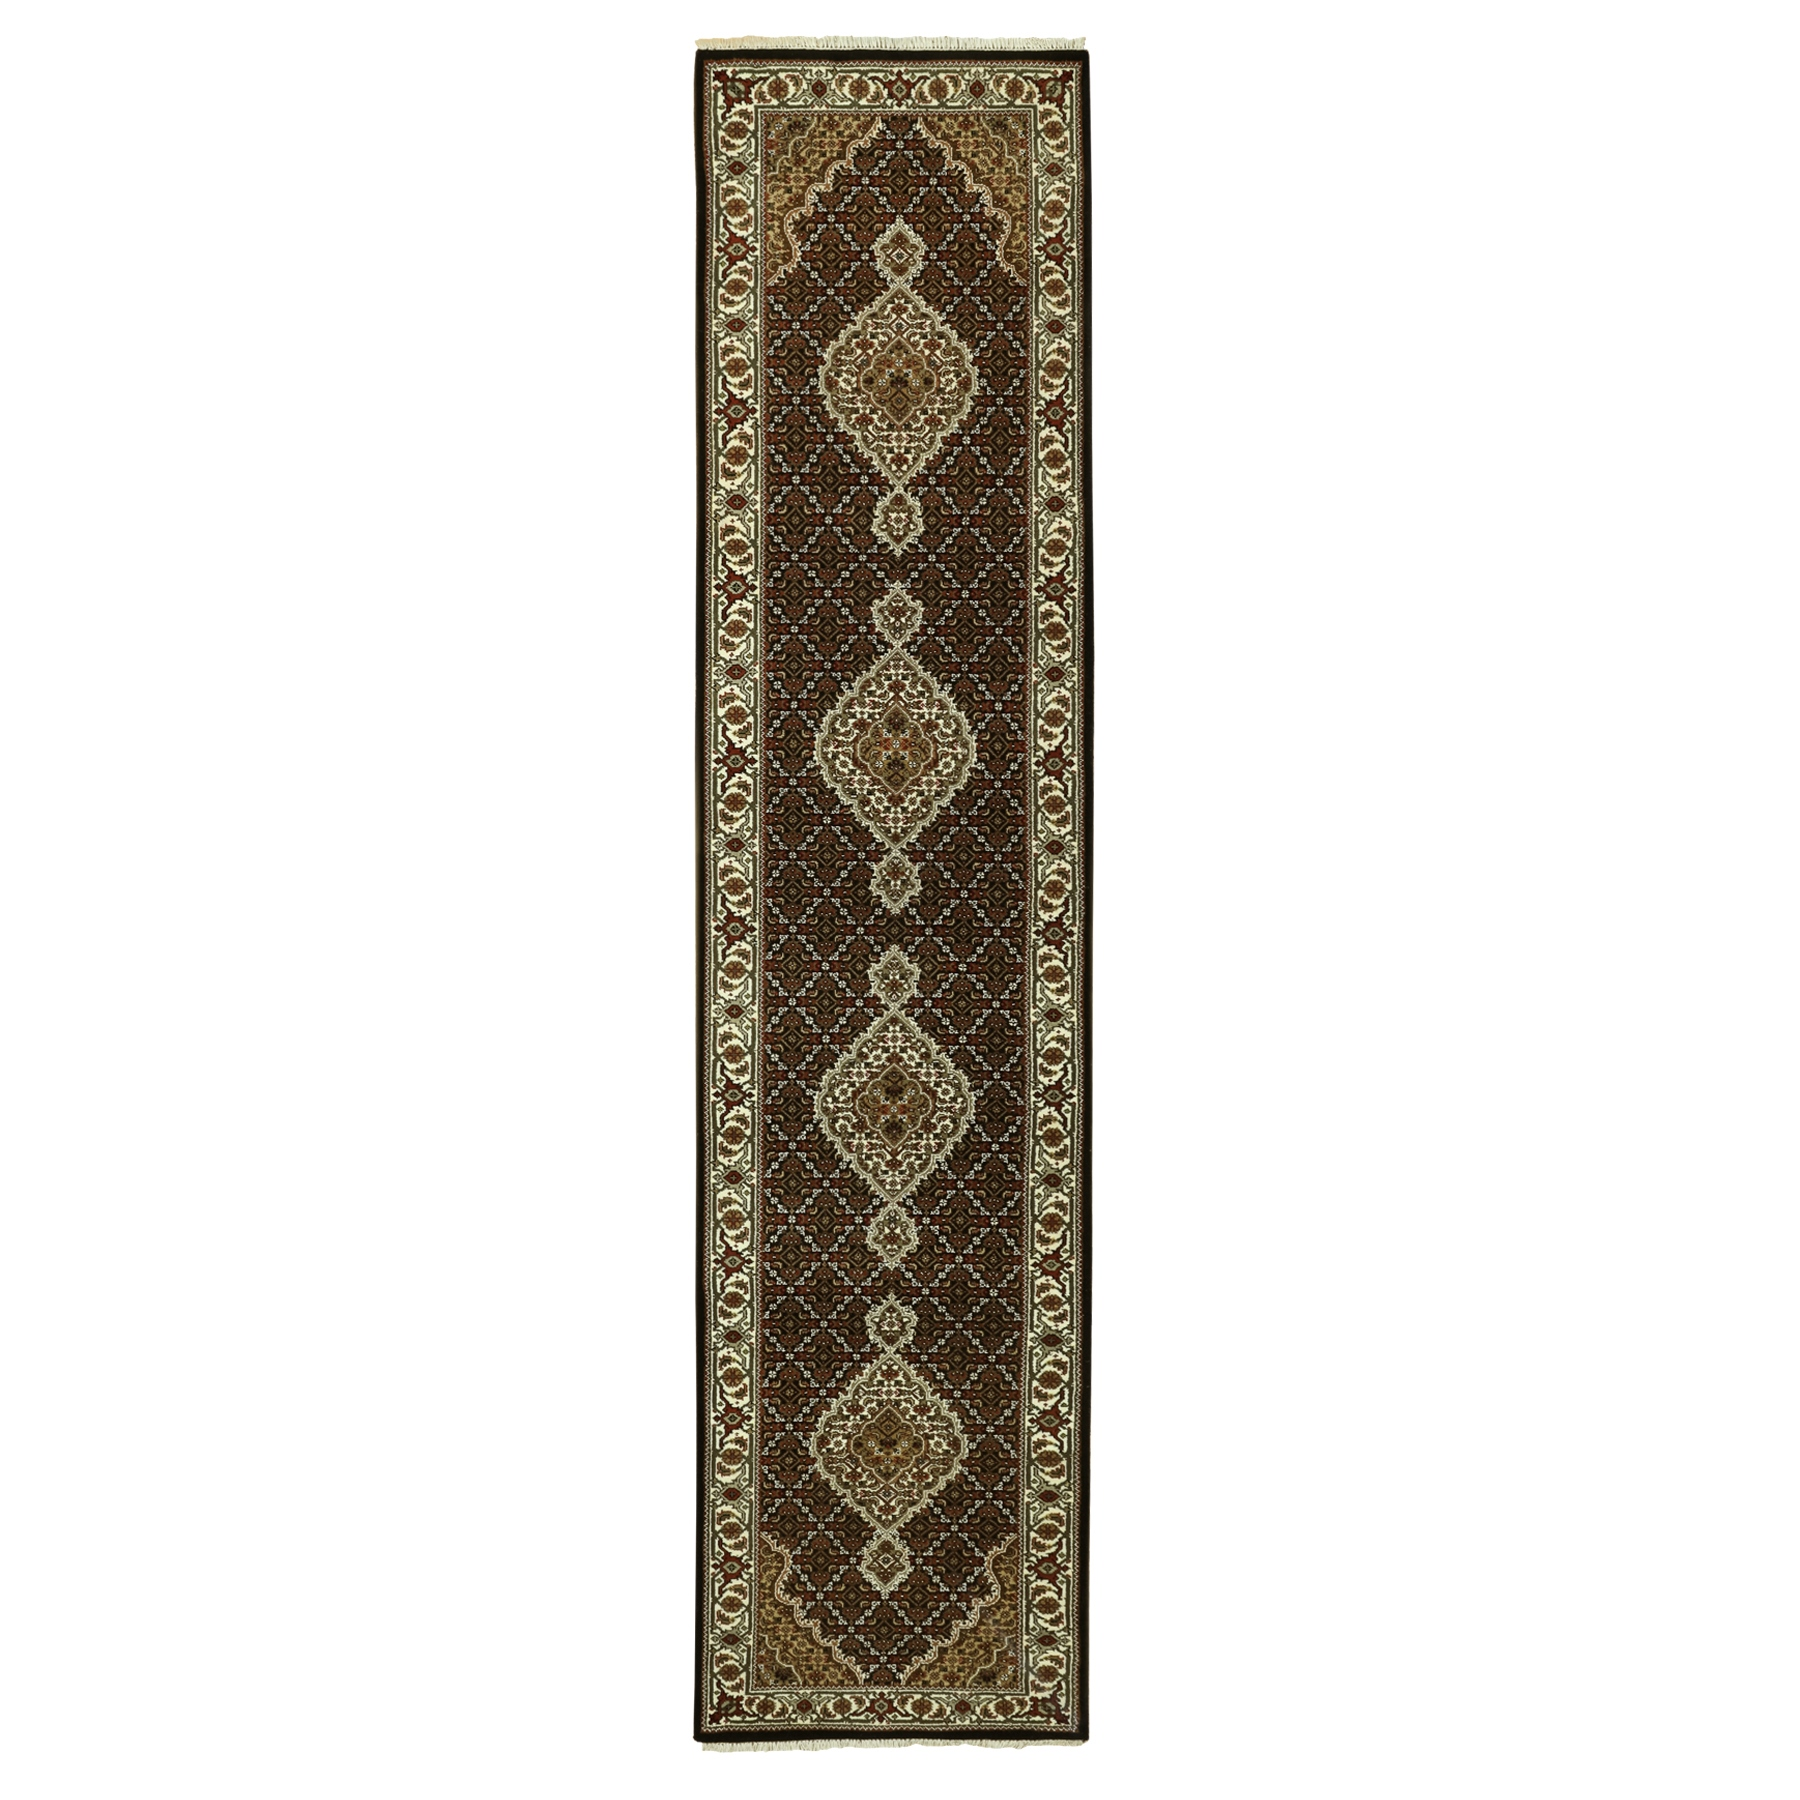 Pirniakan Collection Hand Knotted Red Rug No: 1117700